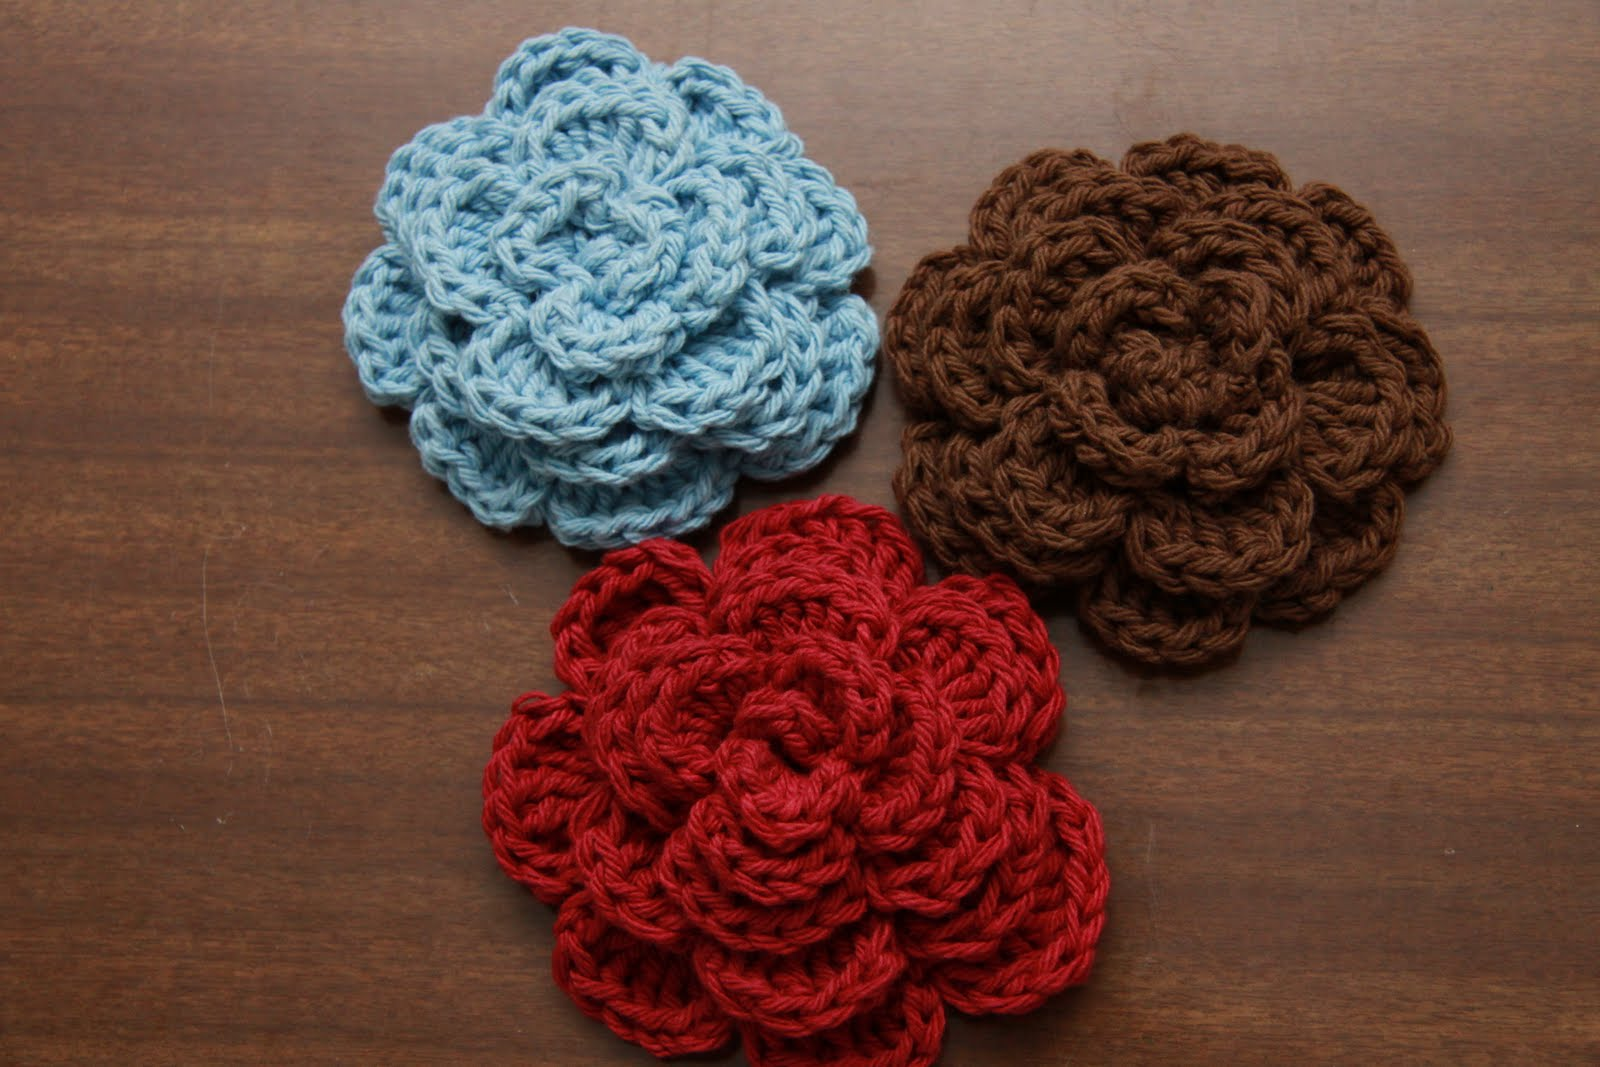 Crochet Hair Decorations : Crazy 4 Crafting: Crochet Hair Accessories